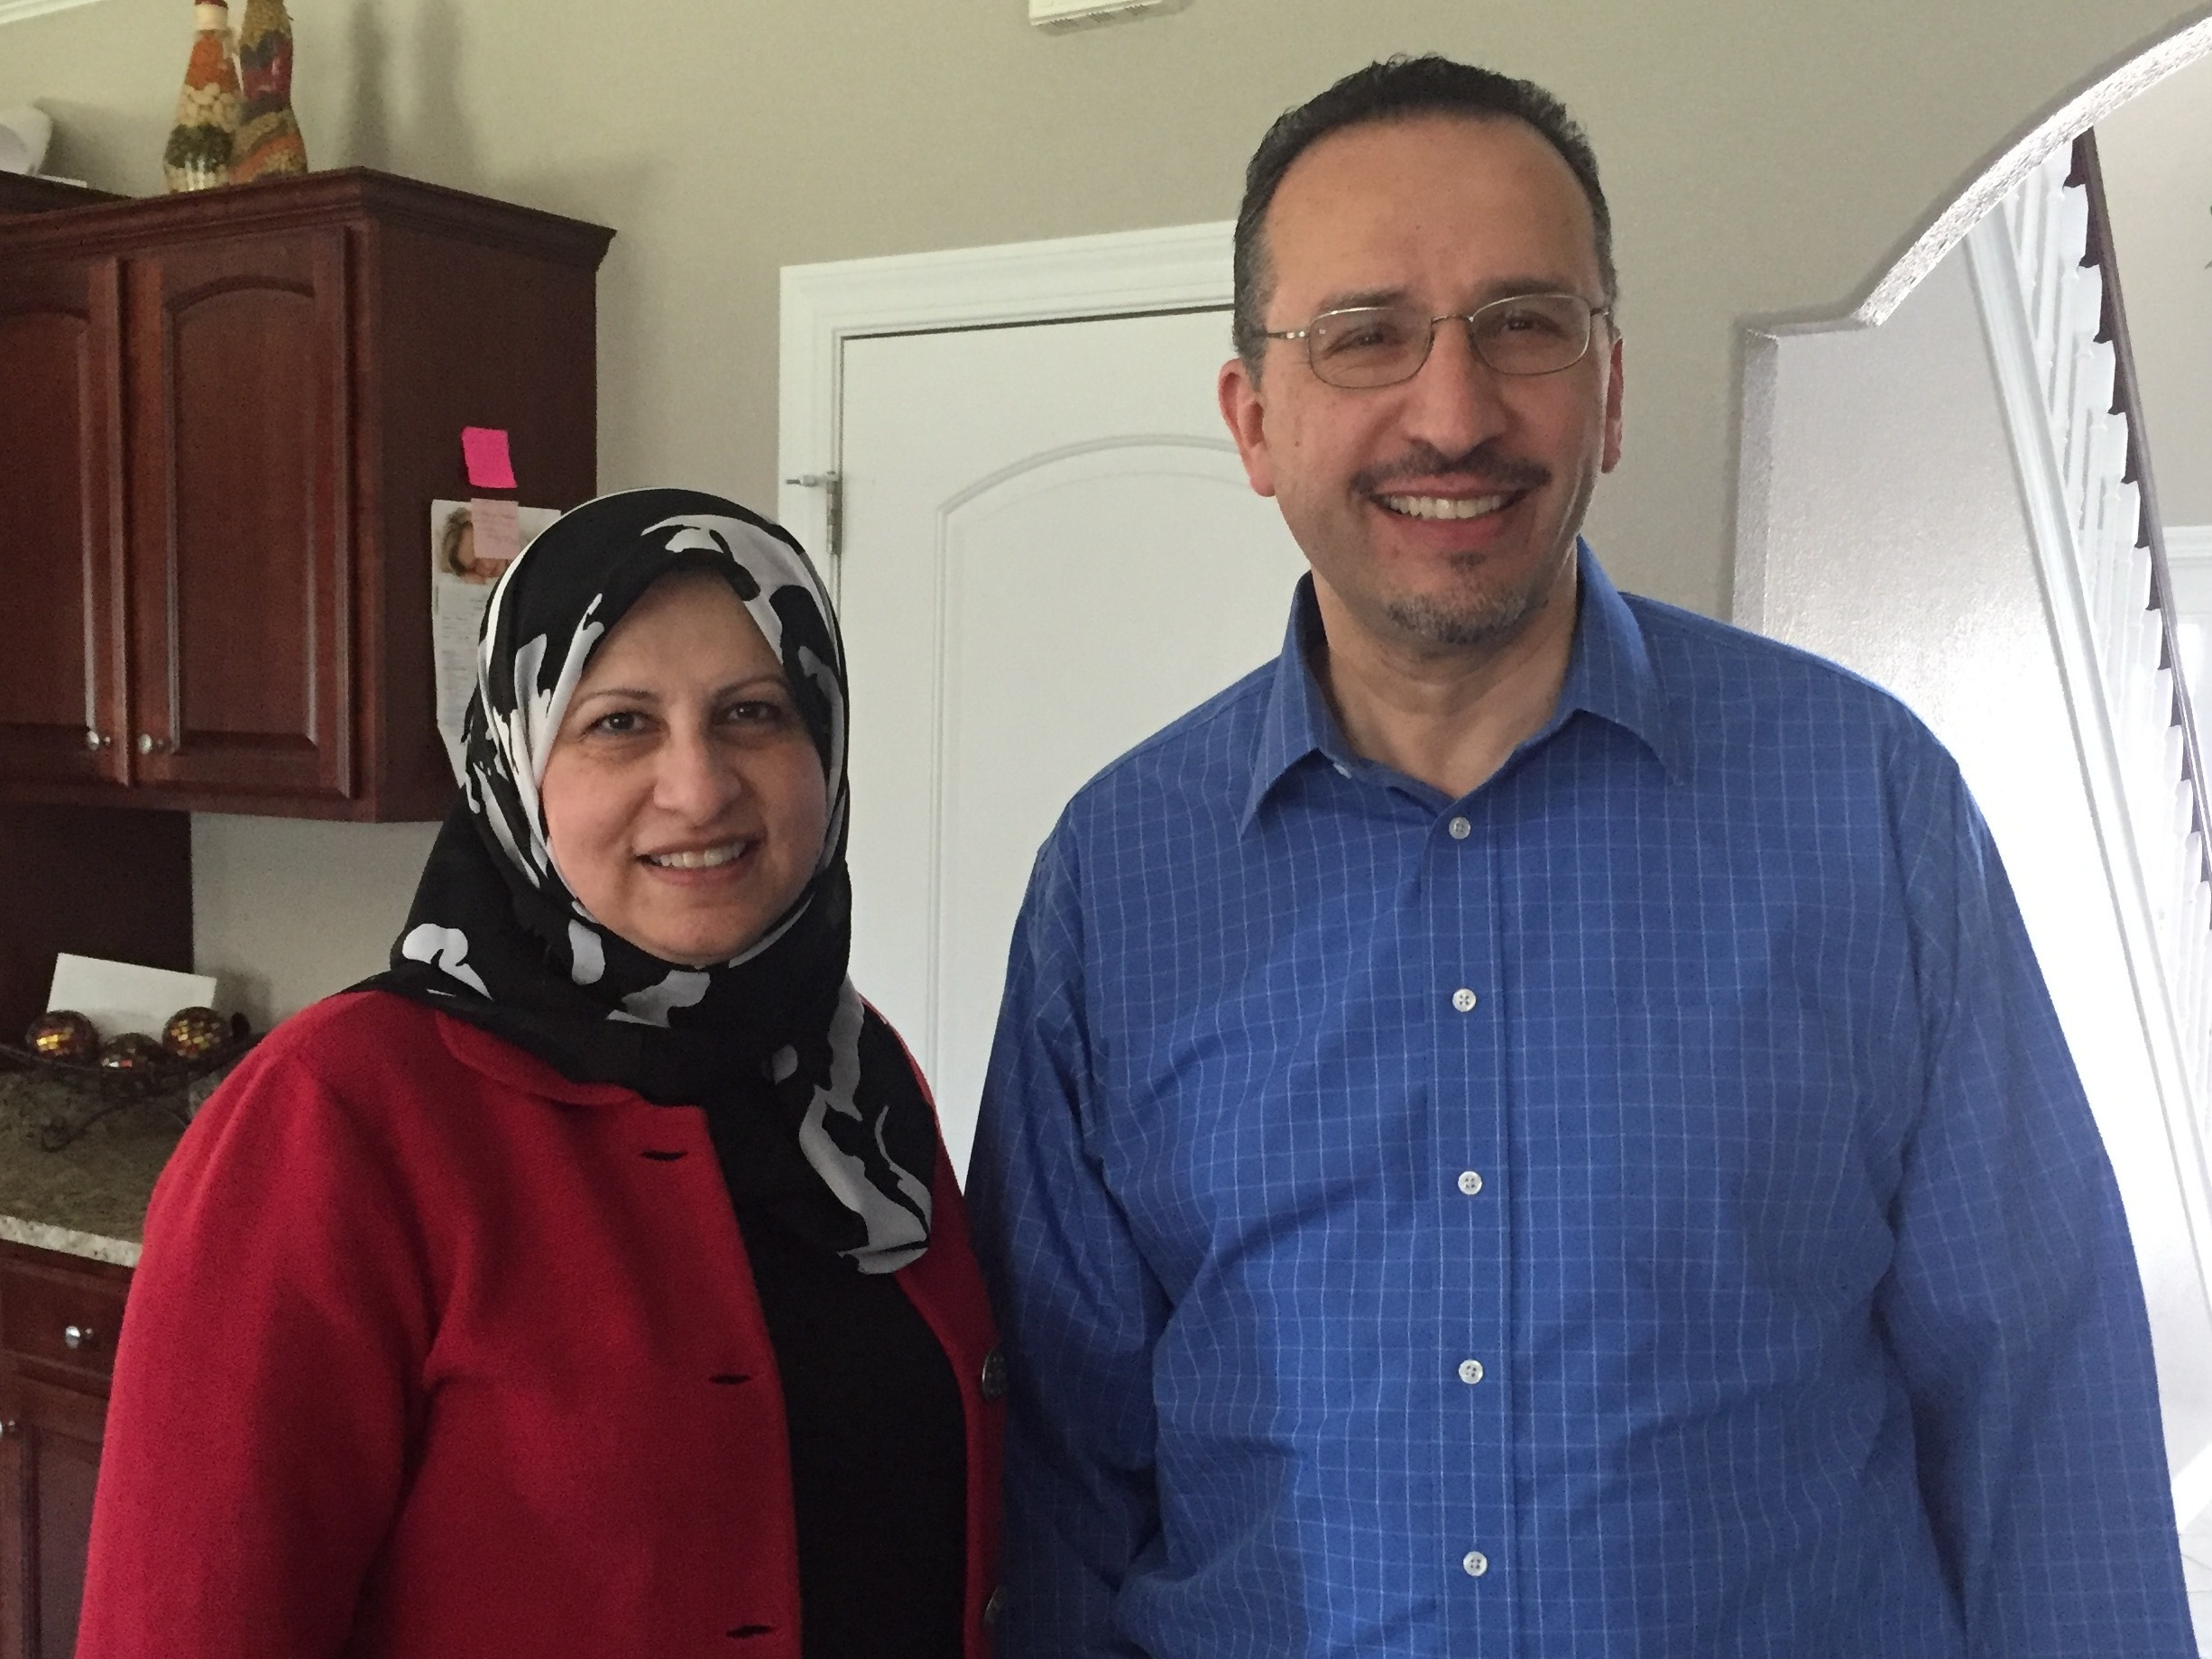 Frustrated With Campaign Rhetoric, Muslims Turn To Political Activism